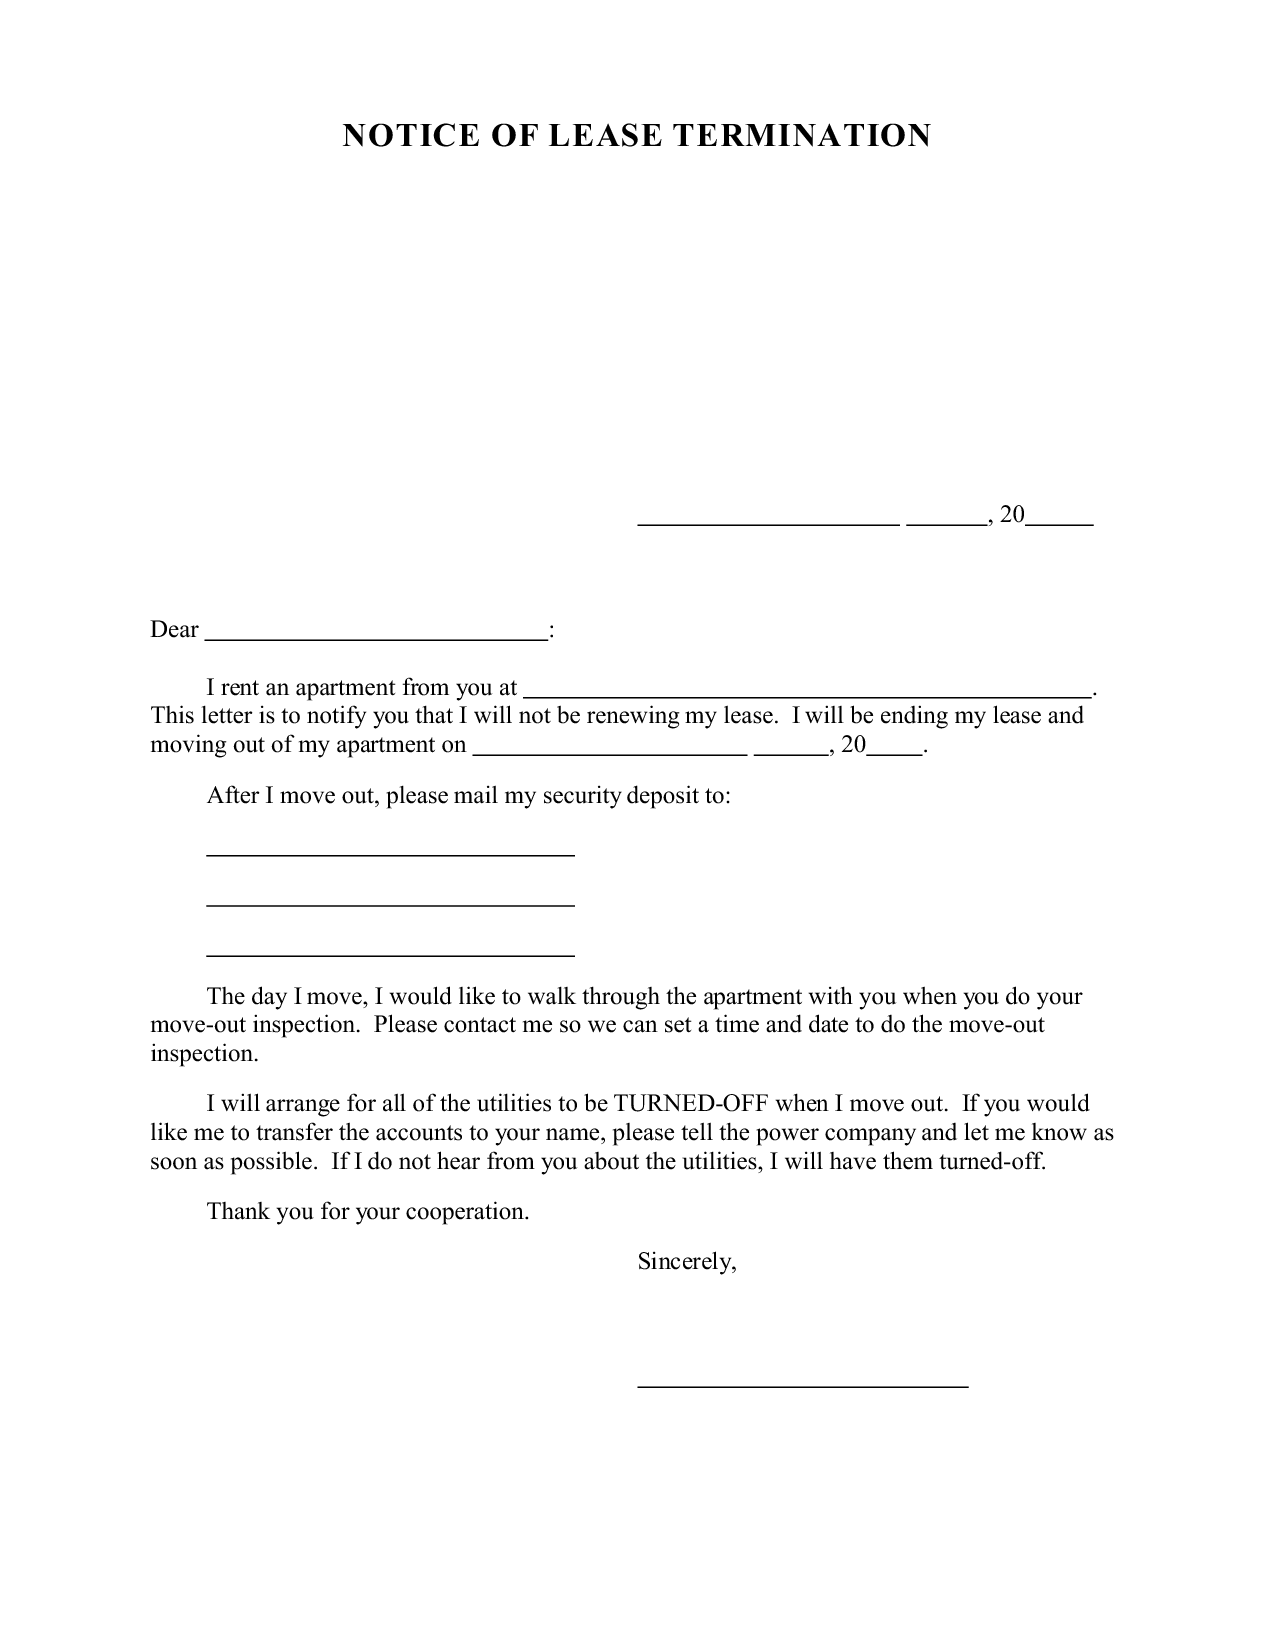 Notice Of Lease Termination 45 Eviction Notice Templates Lease Termination  Letters, Landlord Notice Of Termination Of Lease Template Sample Form, ...